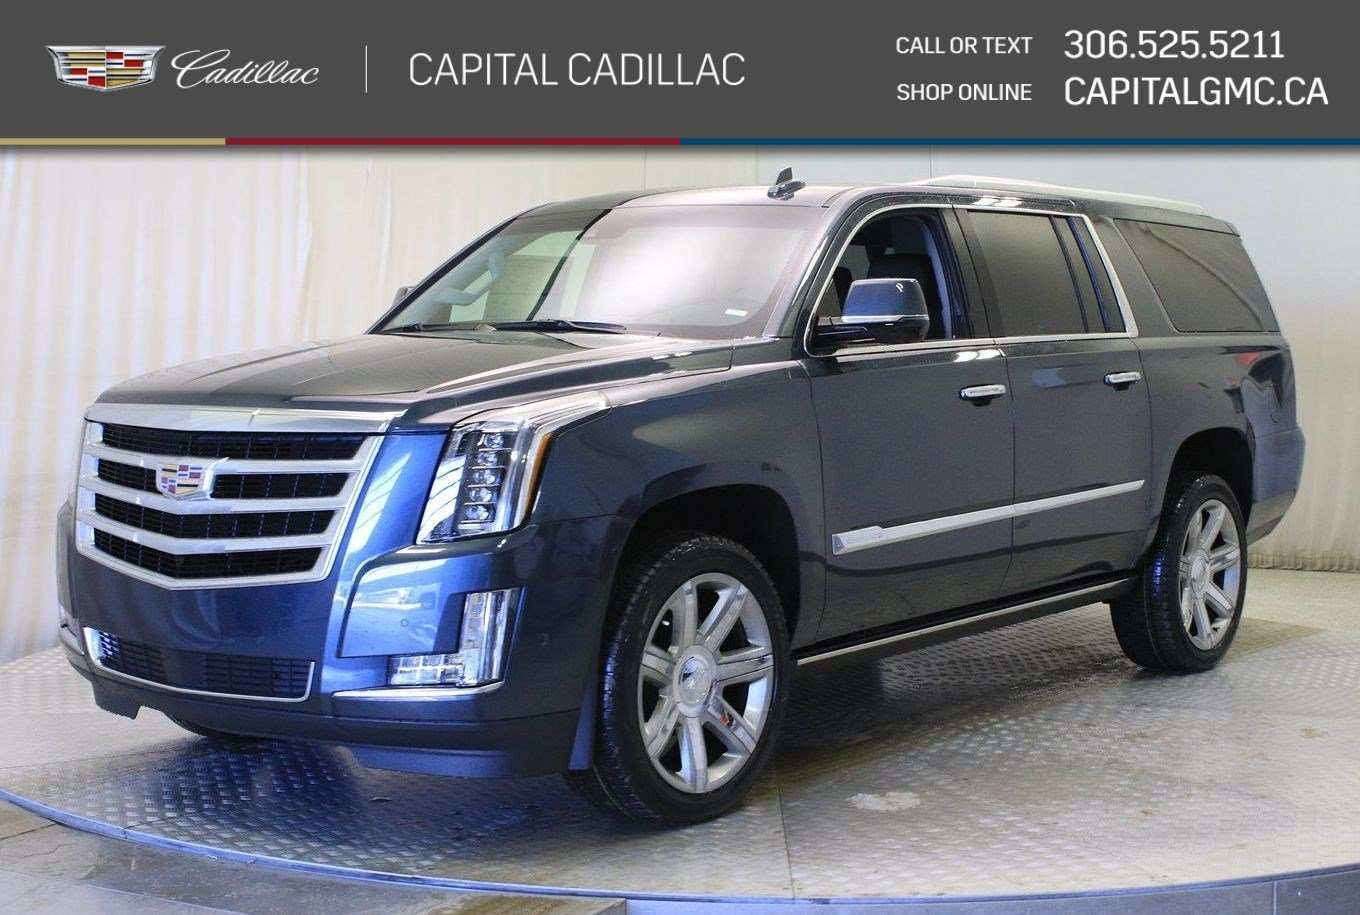 20 Best 2019 Cadillac Escalade Luxury Suv Images